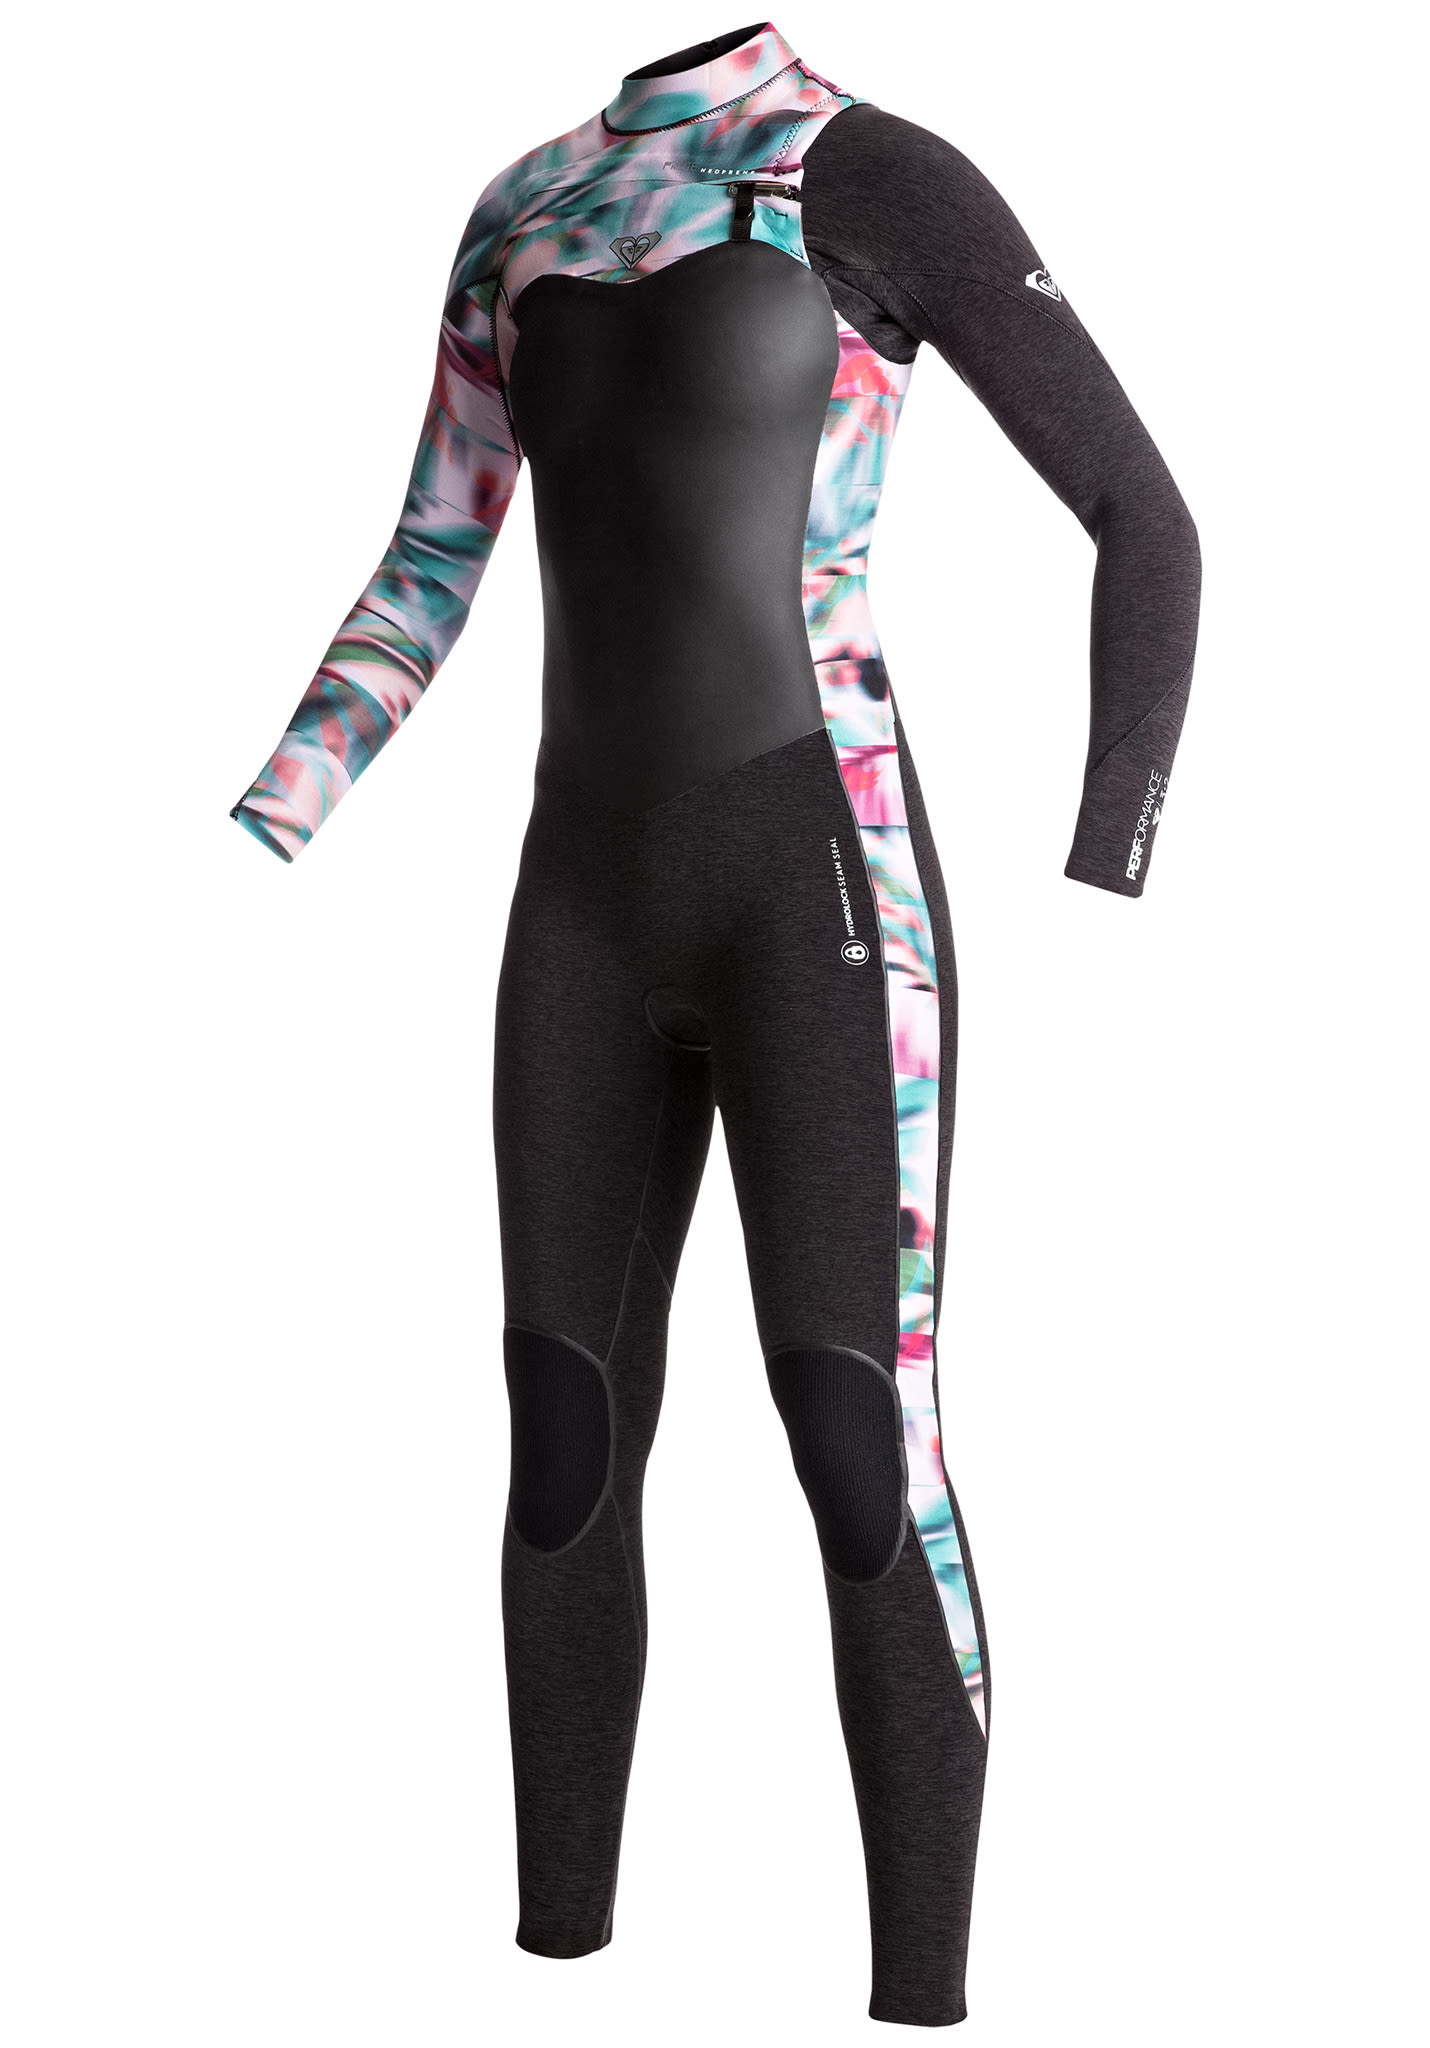 fd71b565a3a Roxy Performance 3 2mm Chest Zip - Wetsuit for Women - Black - Planet Sports